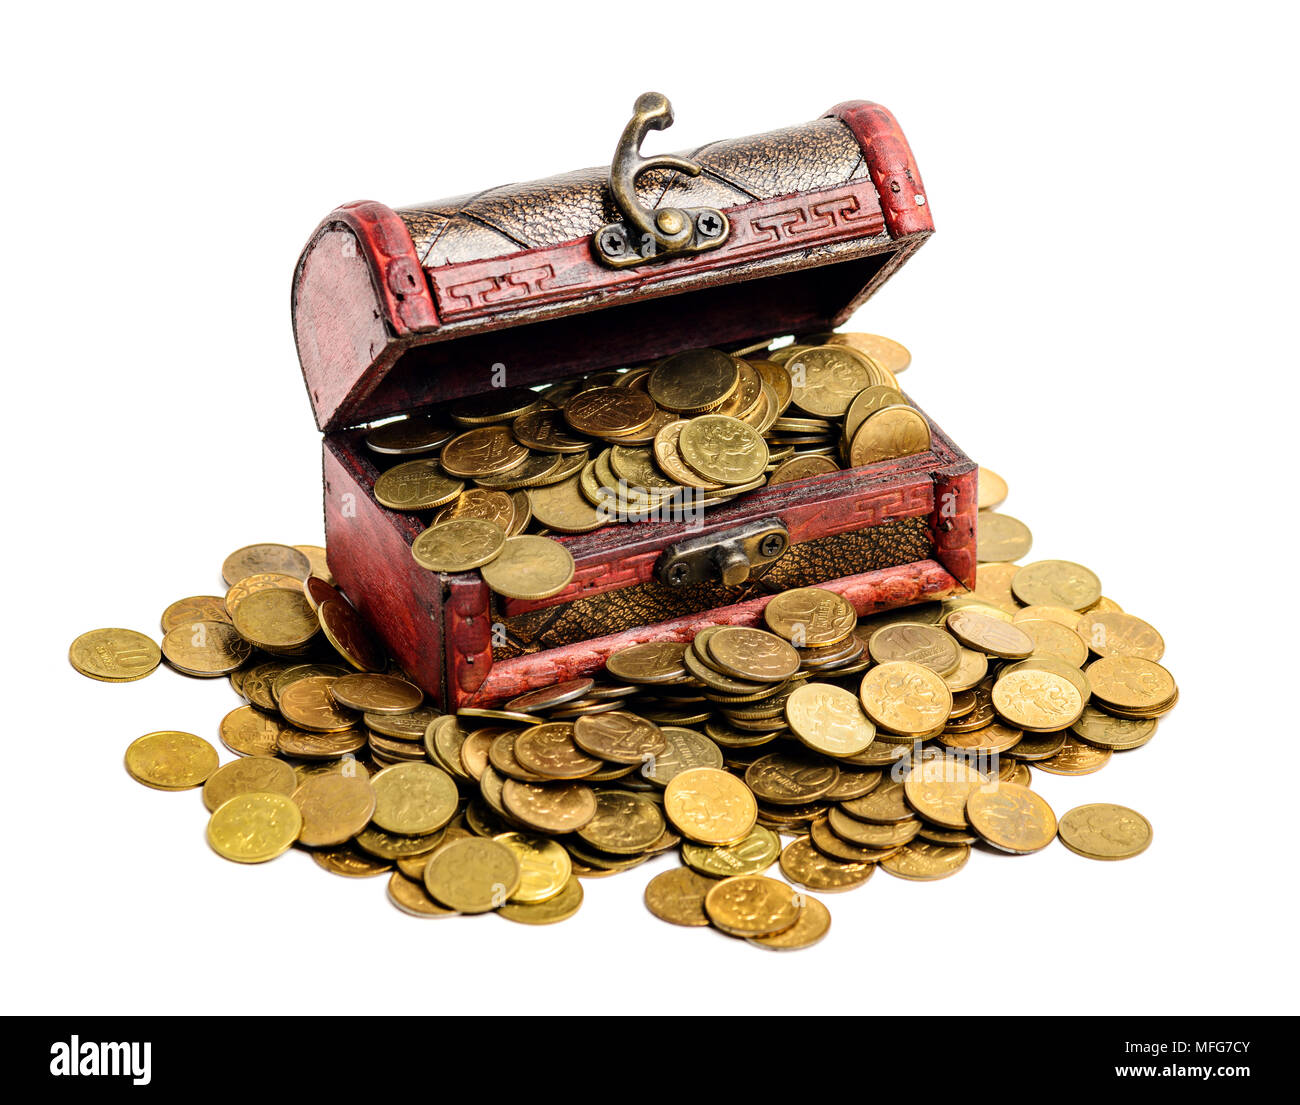 Open treasure chest filled with gold colored coins isolated on white - Stock Image